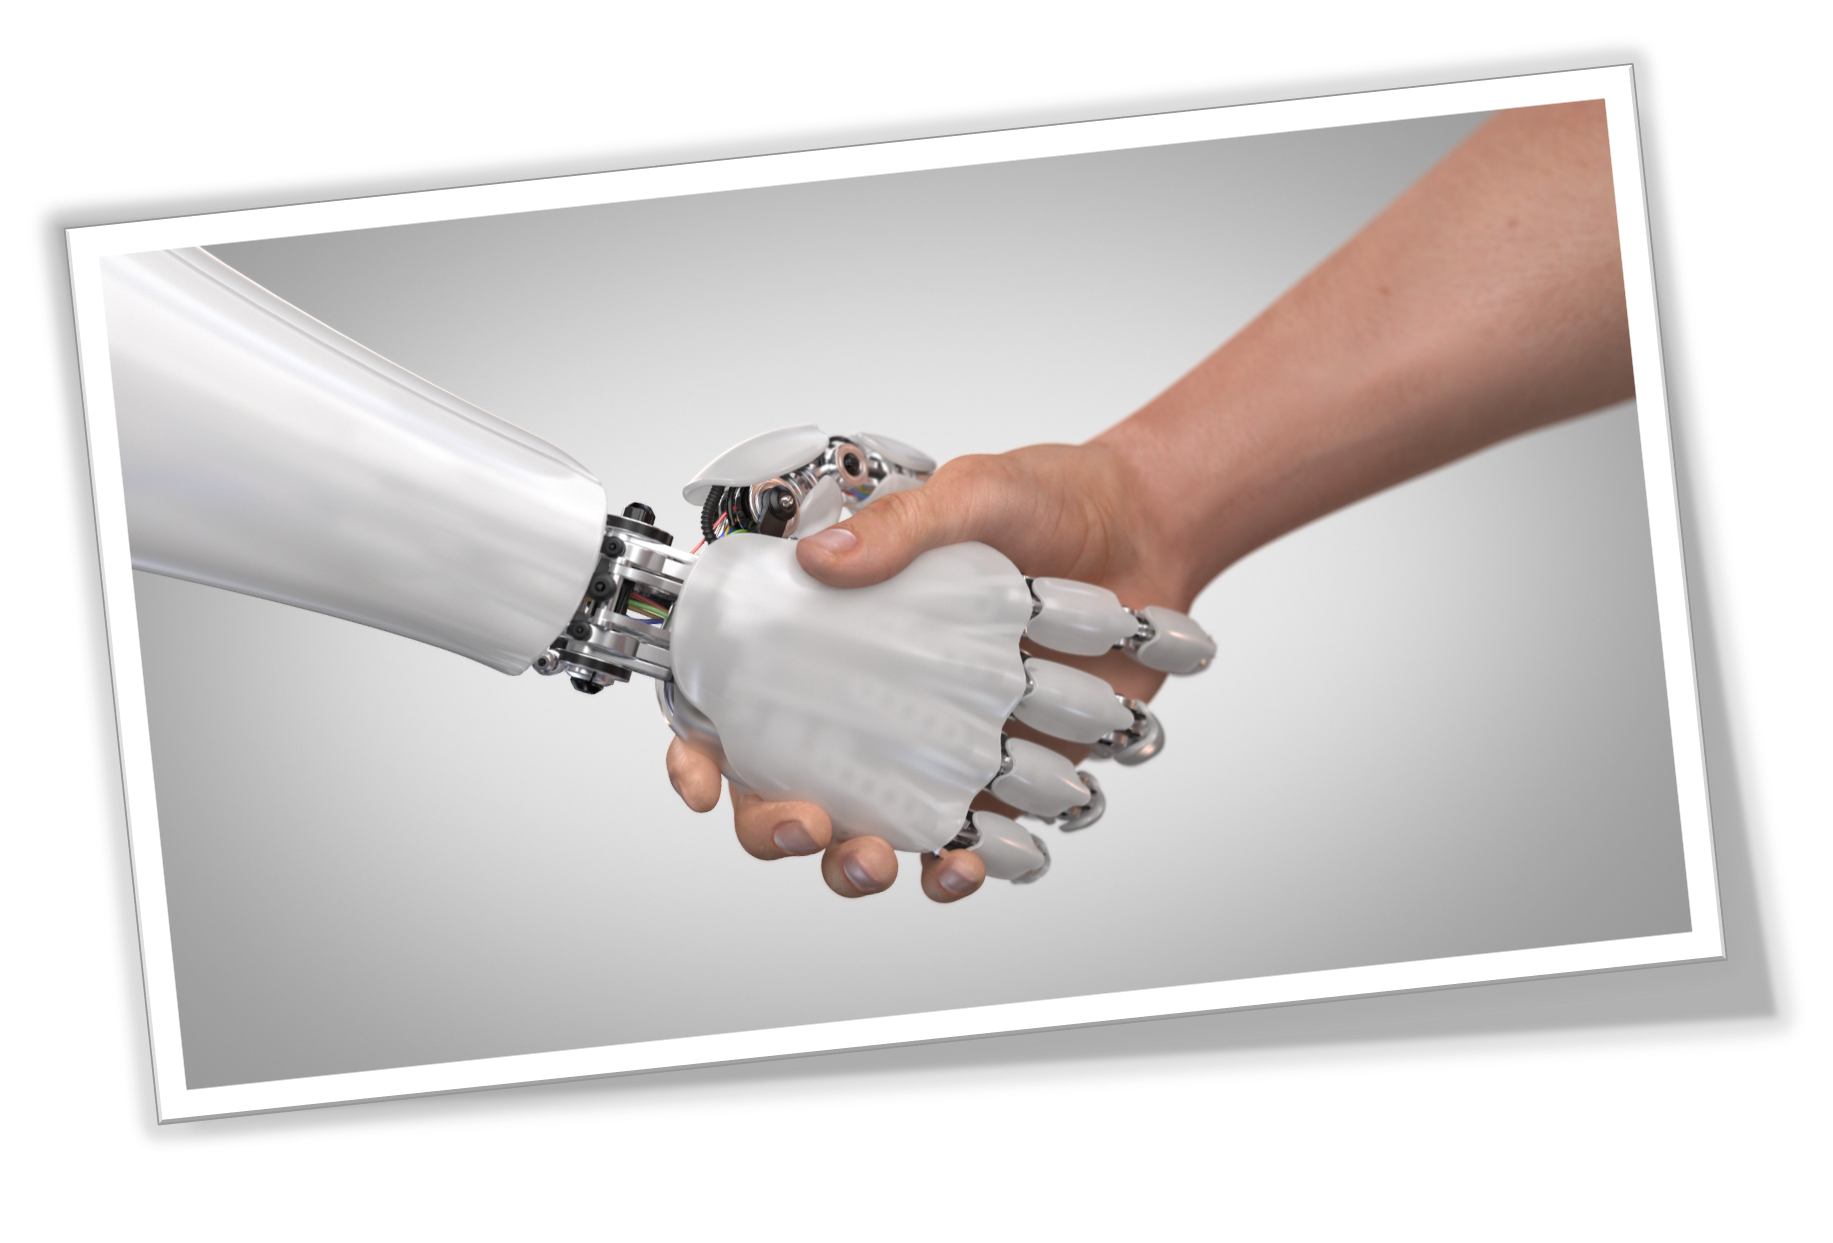 Robot arm and human arm shaking hands